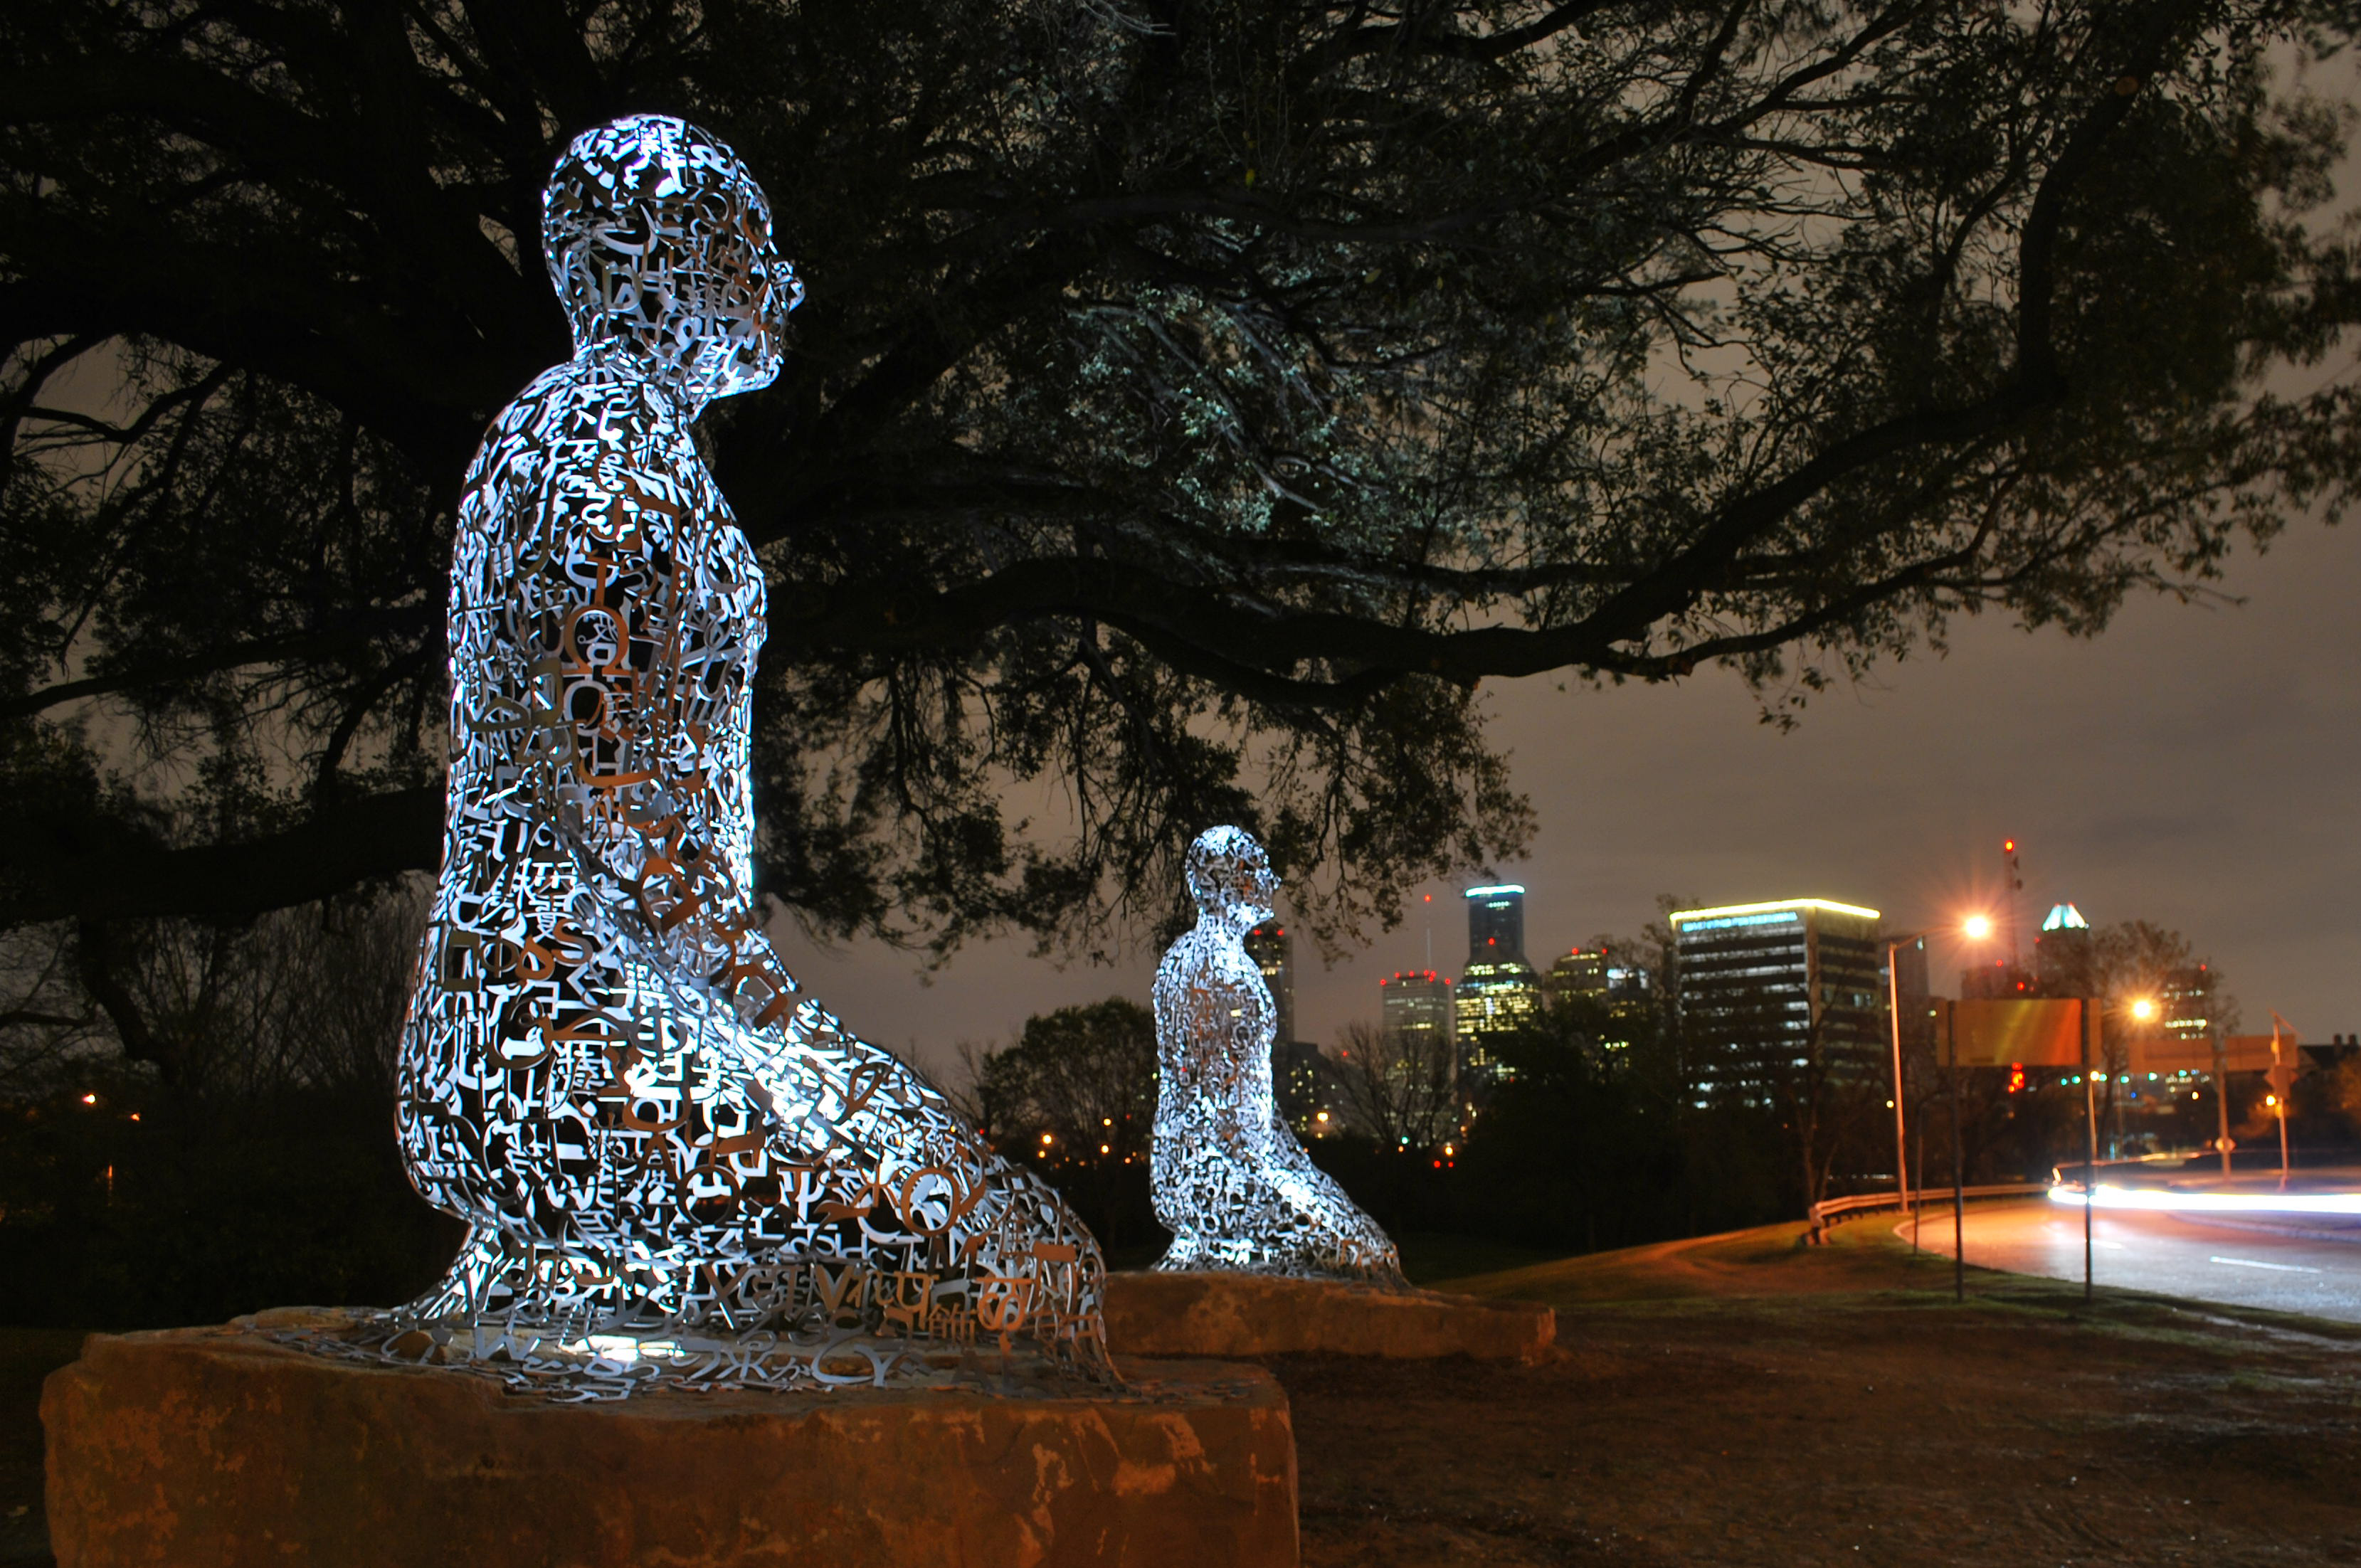 A view of the Tolerance sculptures along Allen Parkway at night time. Photo: Zahid Alibhai